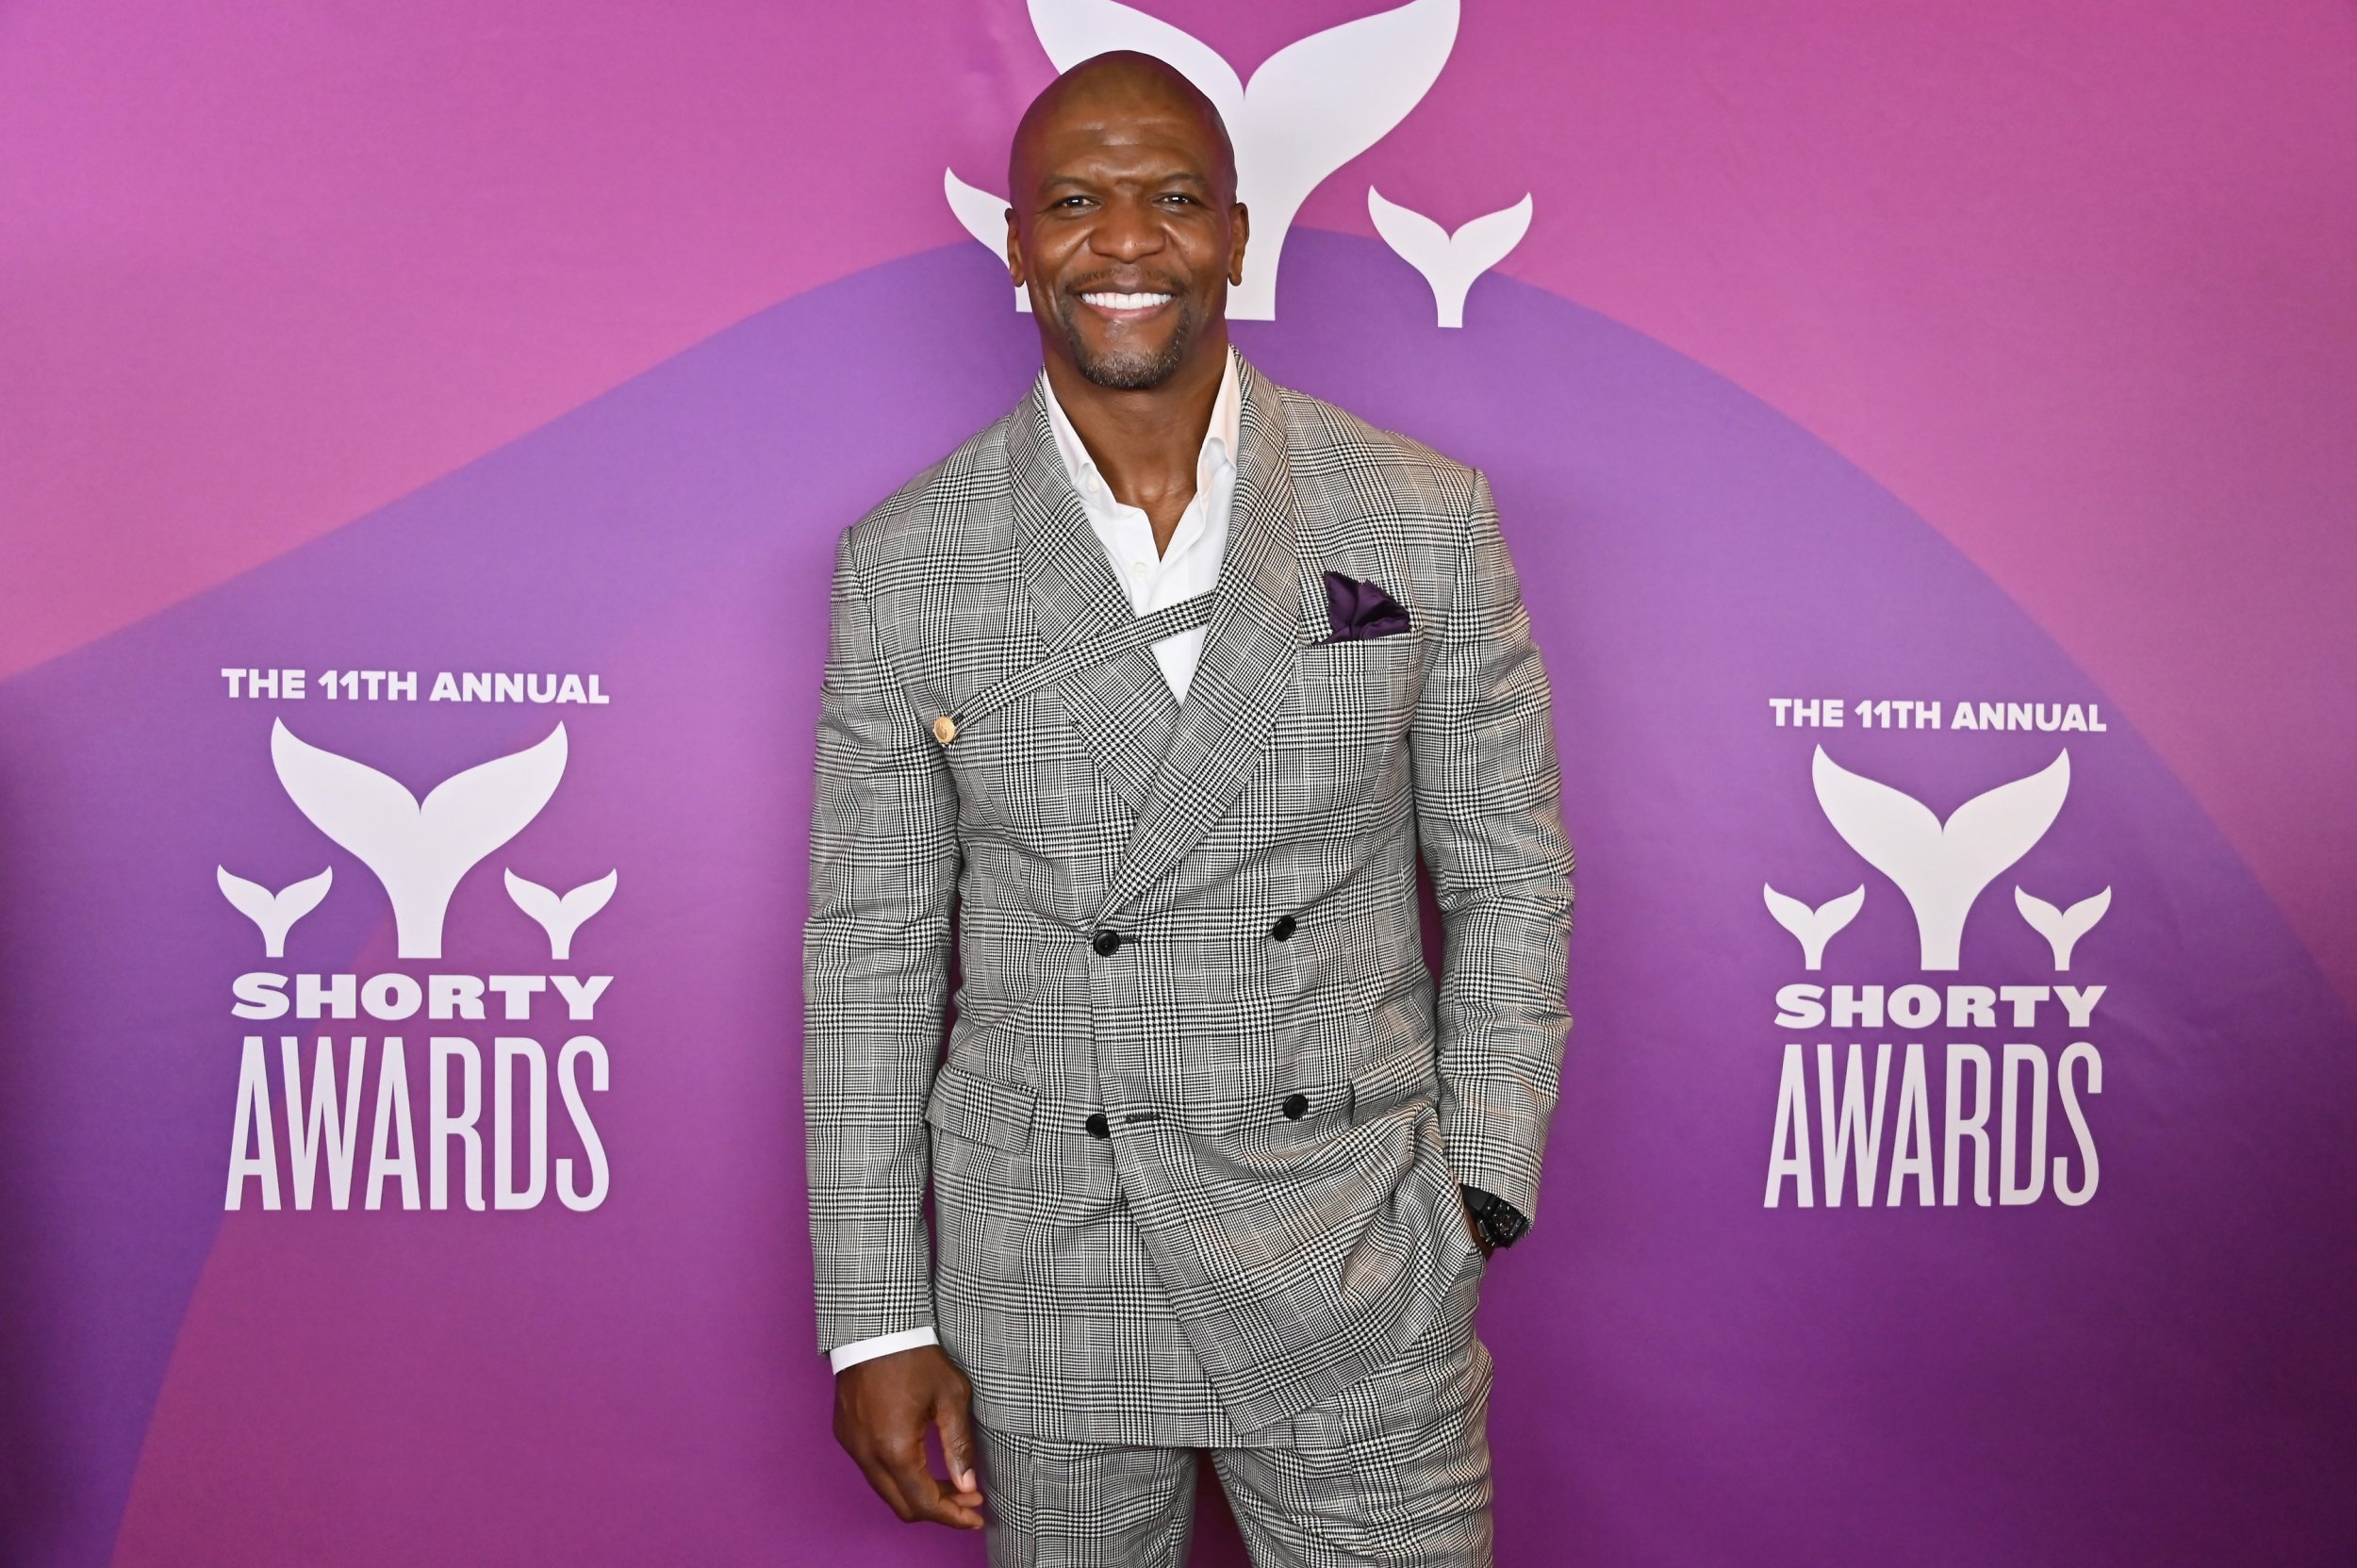 Terry Crews 'told wife career was over' as he opens up on speaking about sexual assault